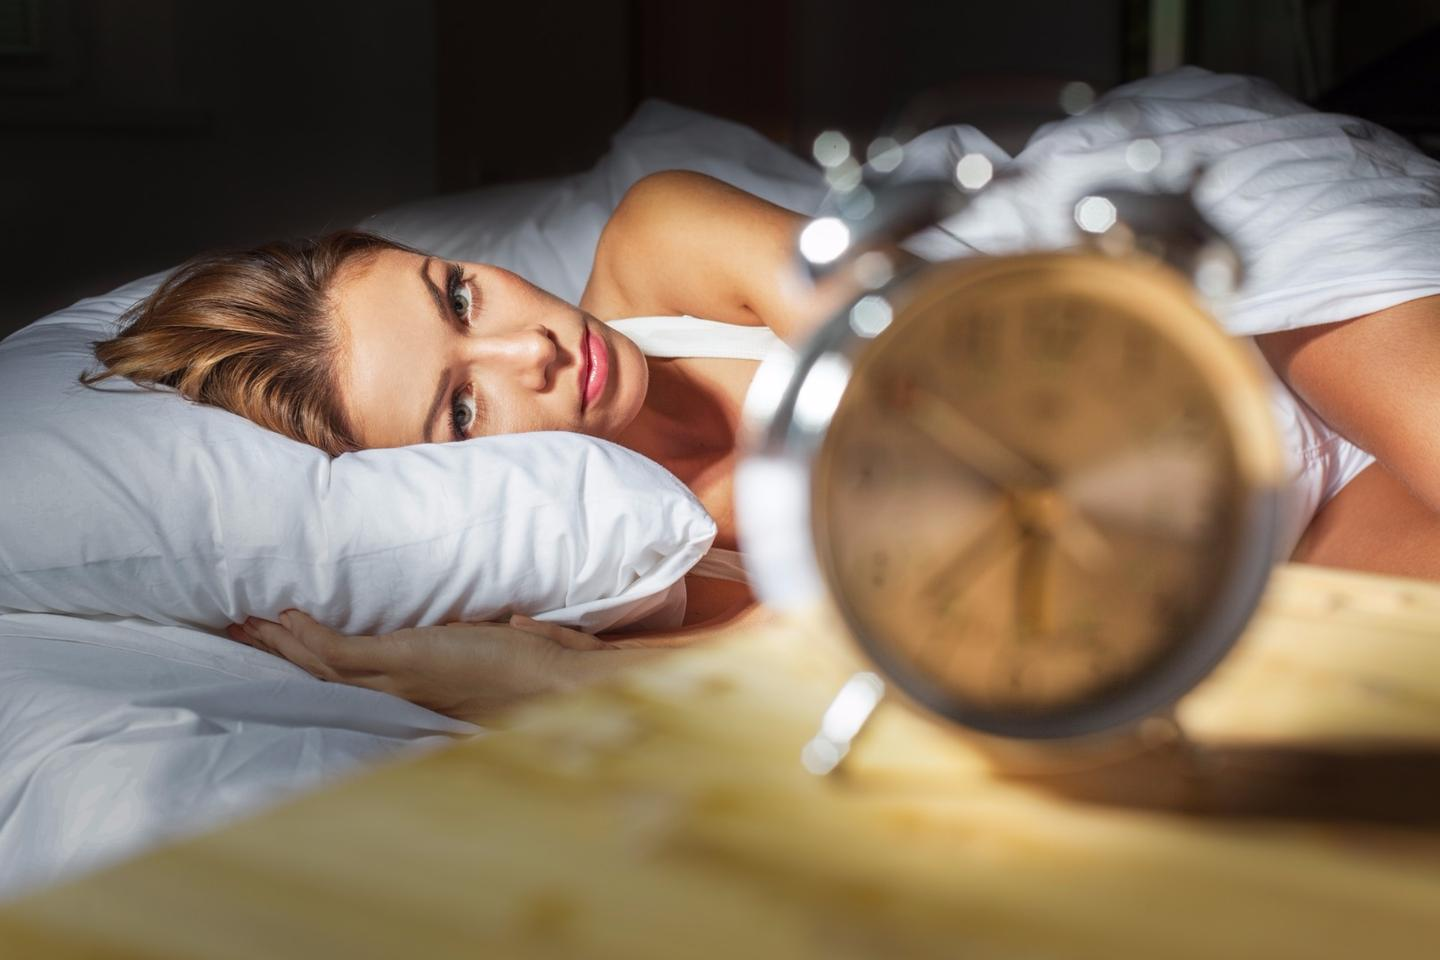 While not serious, jet lag can be a frustrating condition